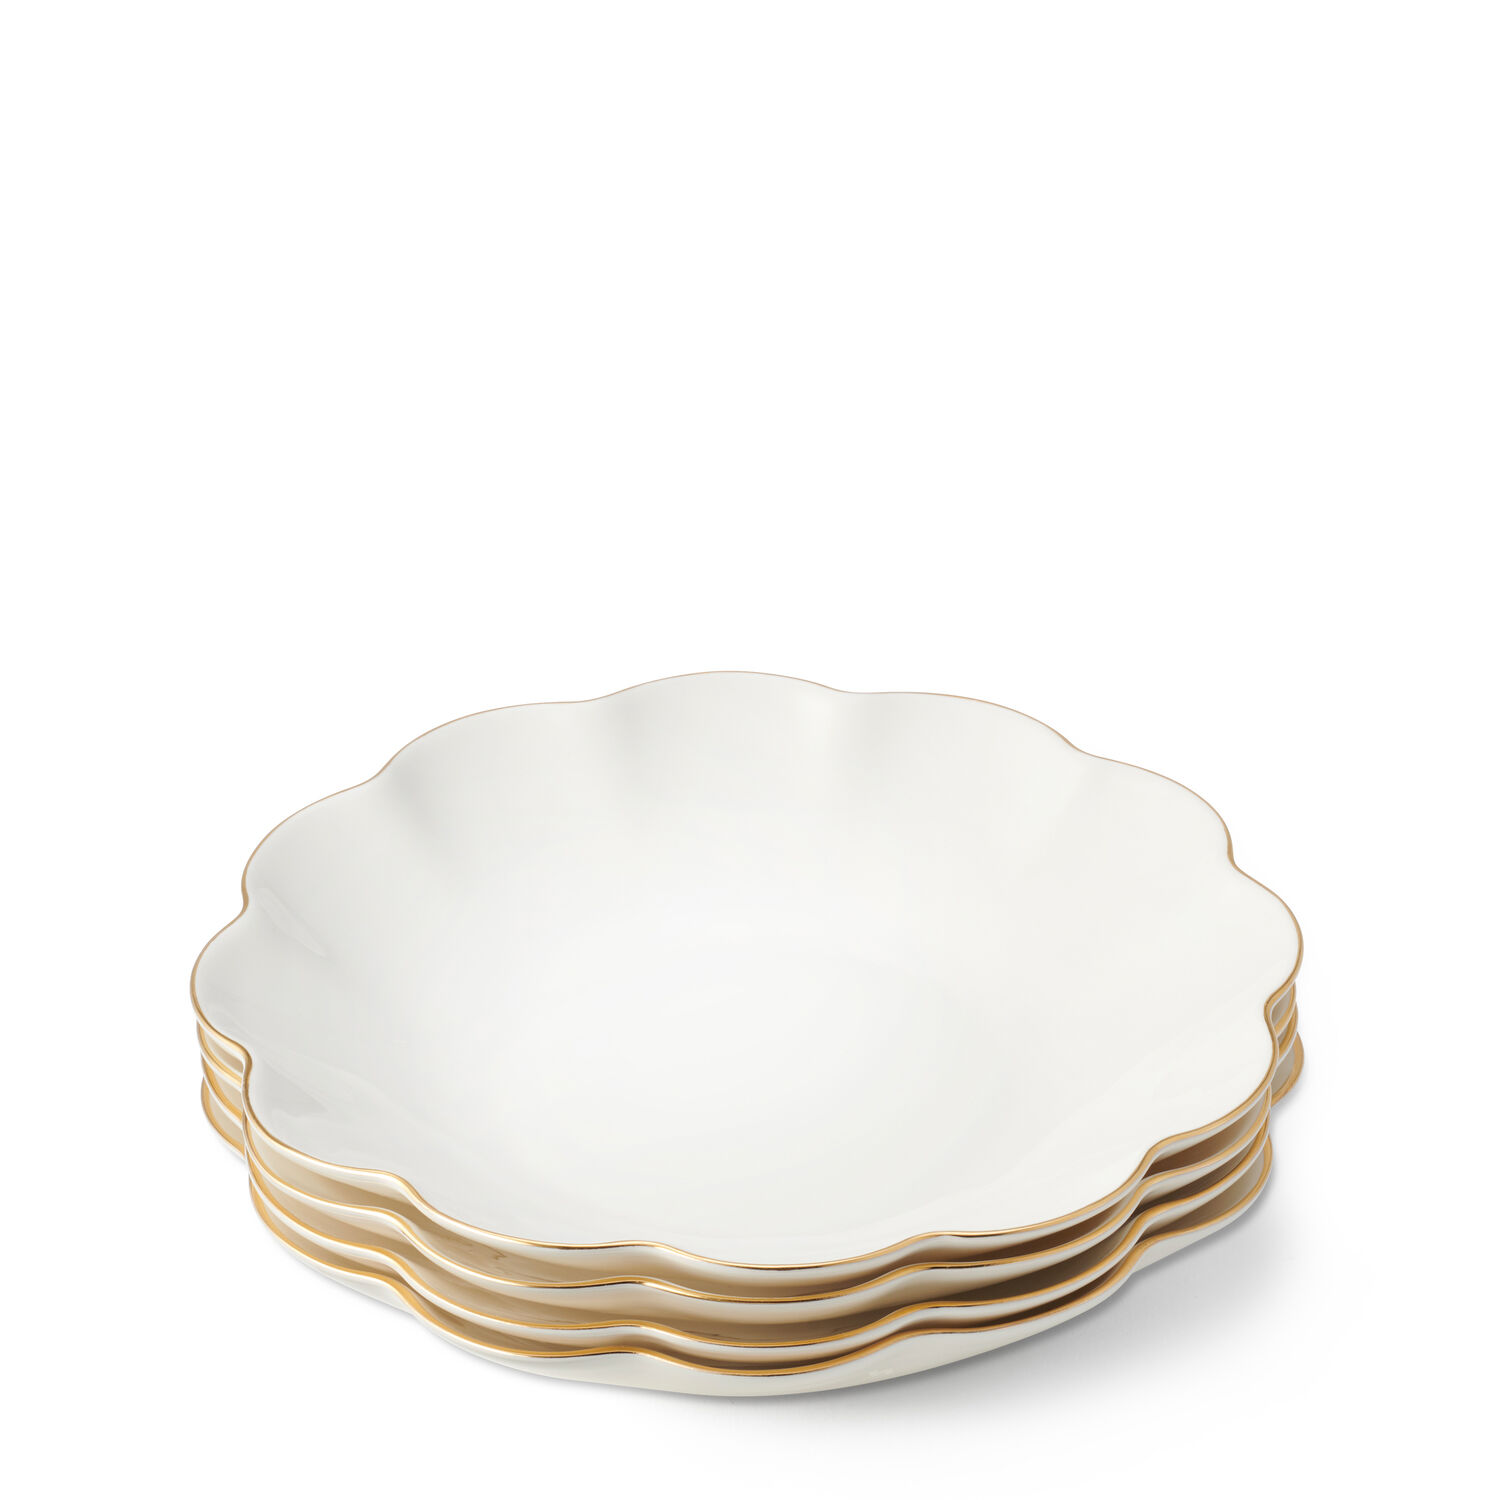 Scalloped Appetizer Plate, Set of 4